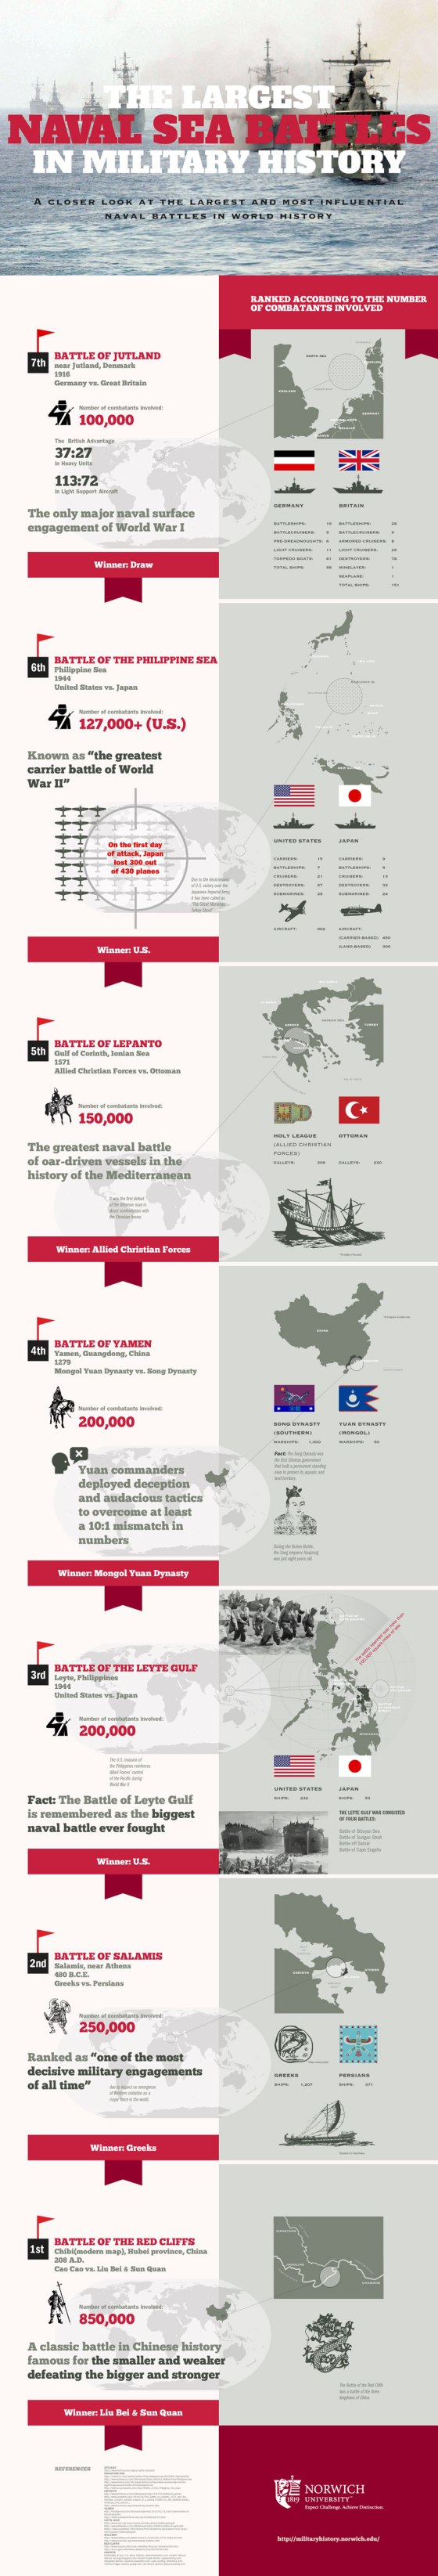 Largest-Naval-Battles-Infographic-Edit3